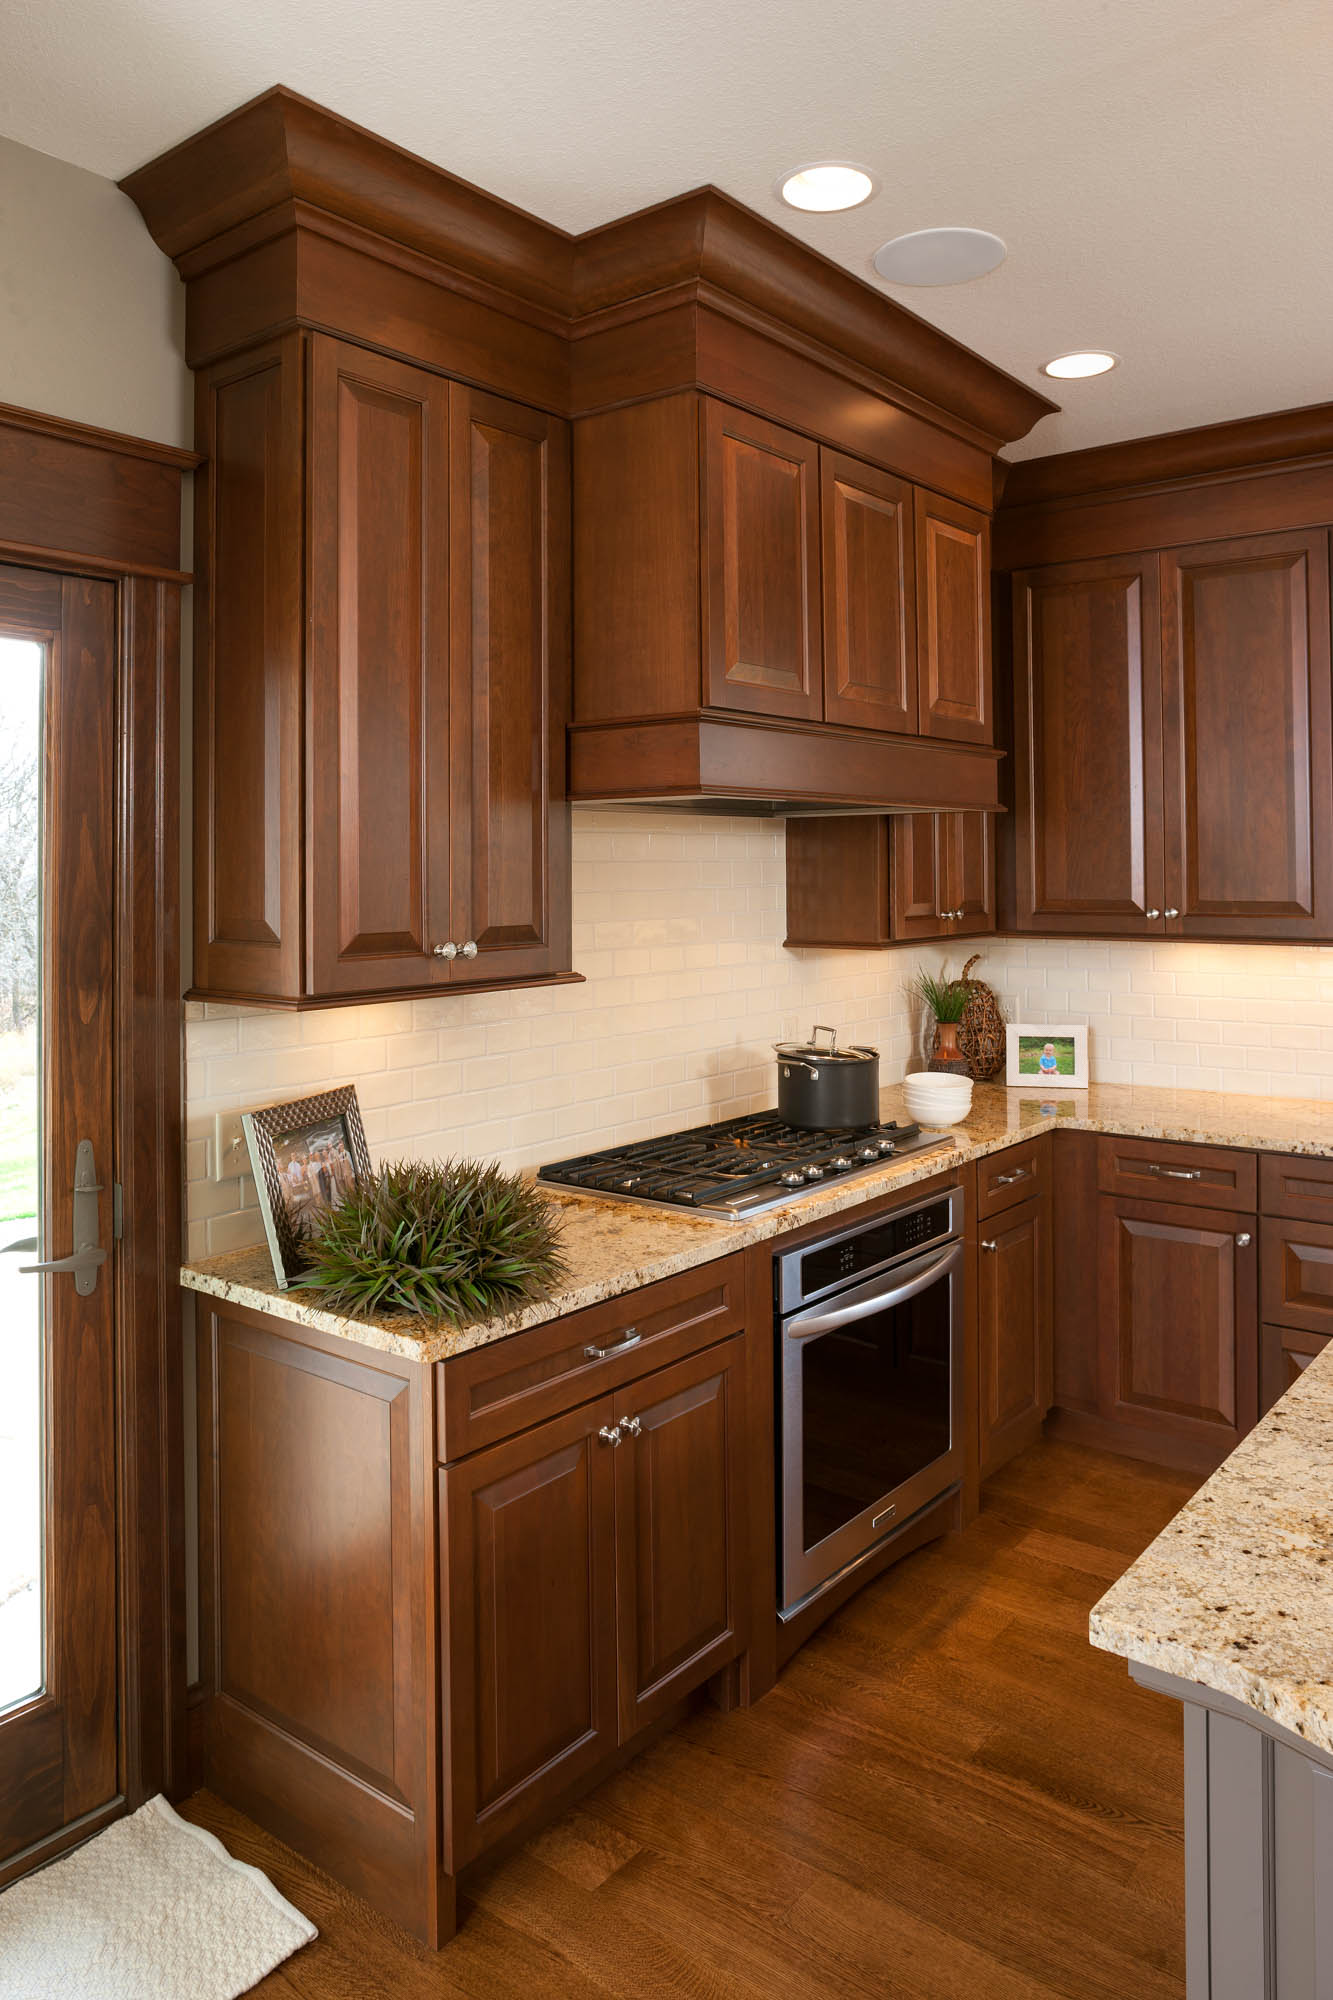 Showplace Kitchen Cabinets Showplace Kitchen Cabinets Kitchen Cabinet Design Ideas